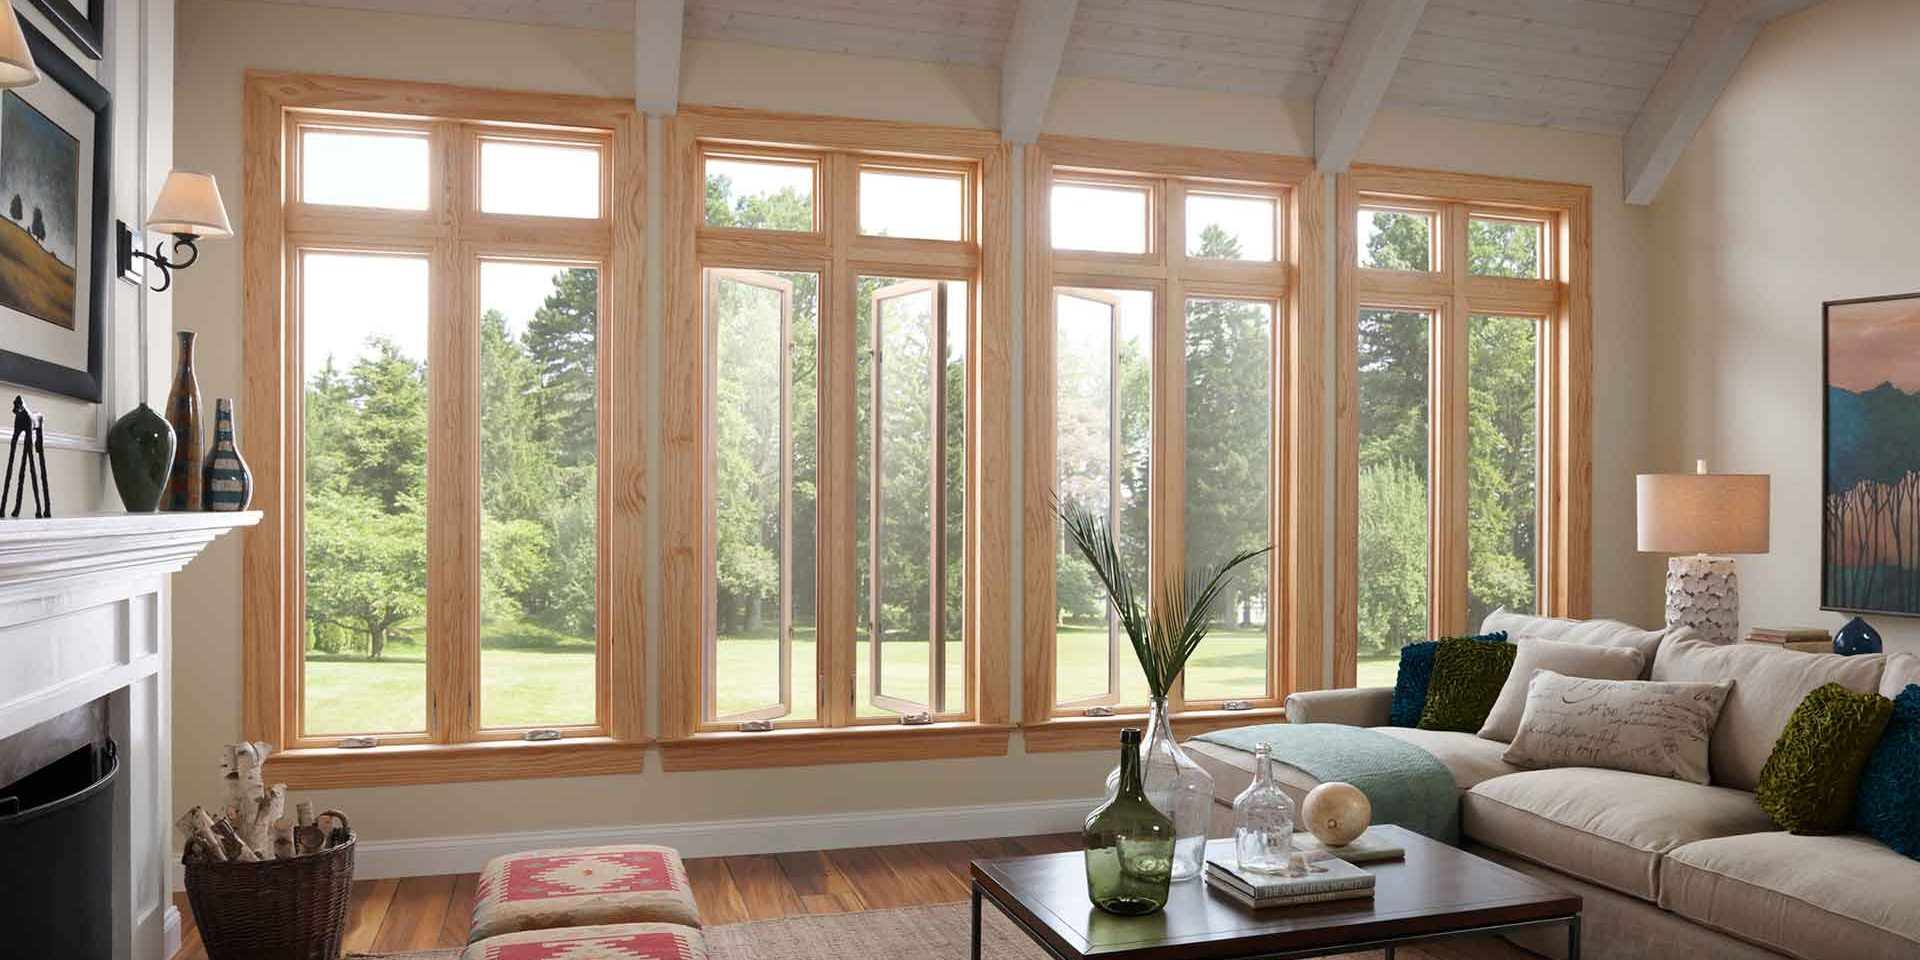 Milgard Fiberglass Windows Statton Glass Inc